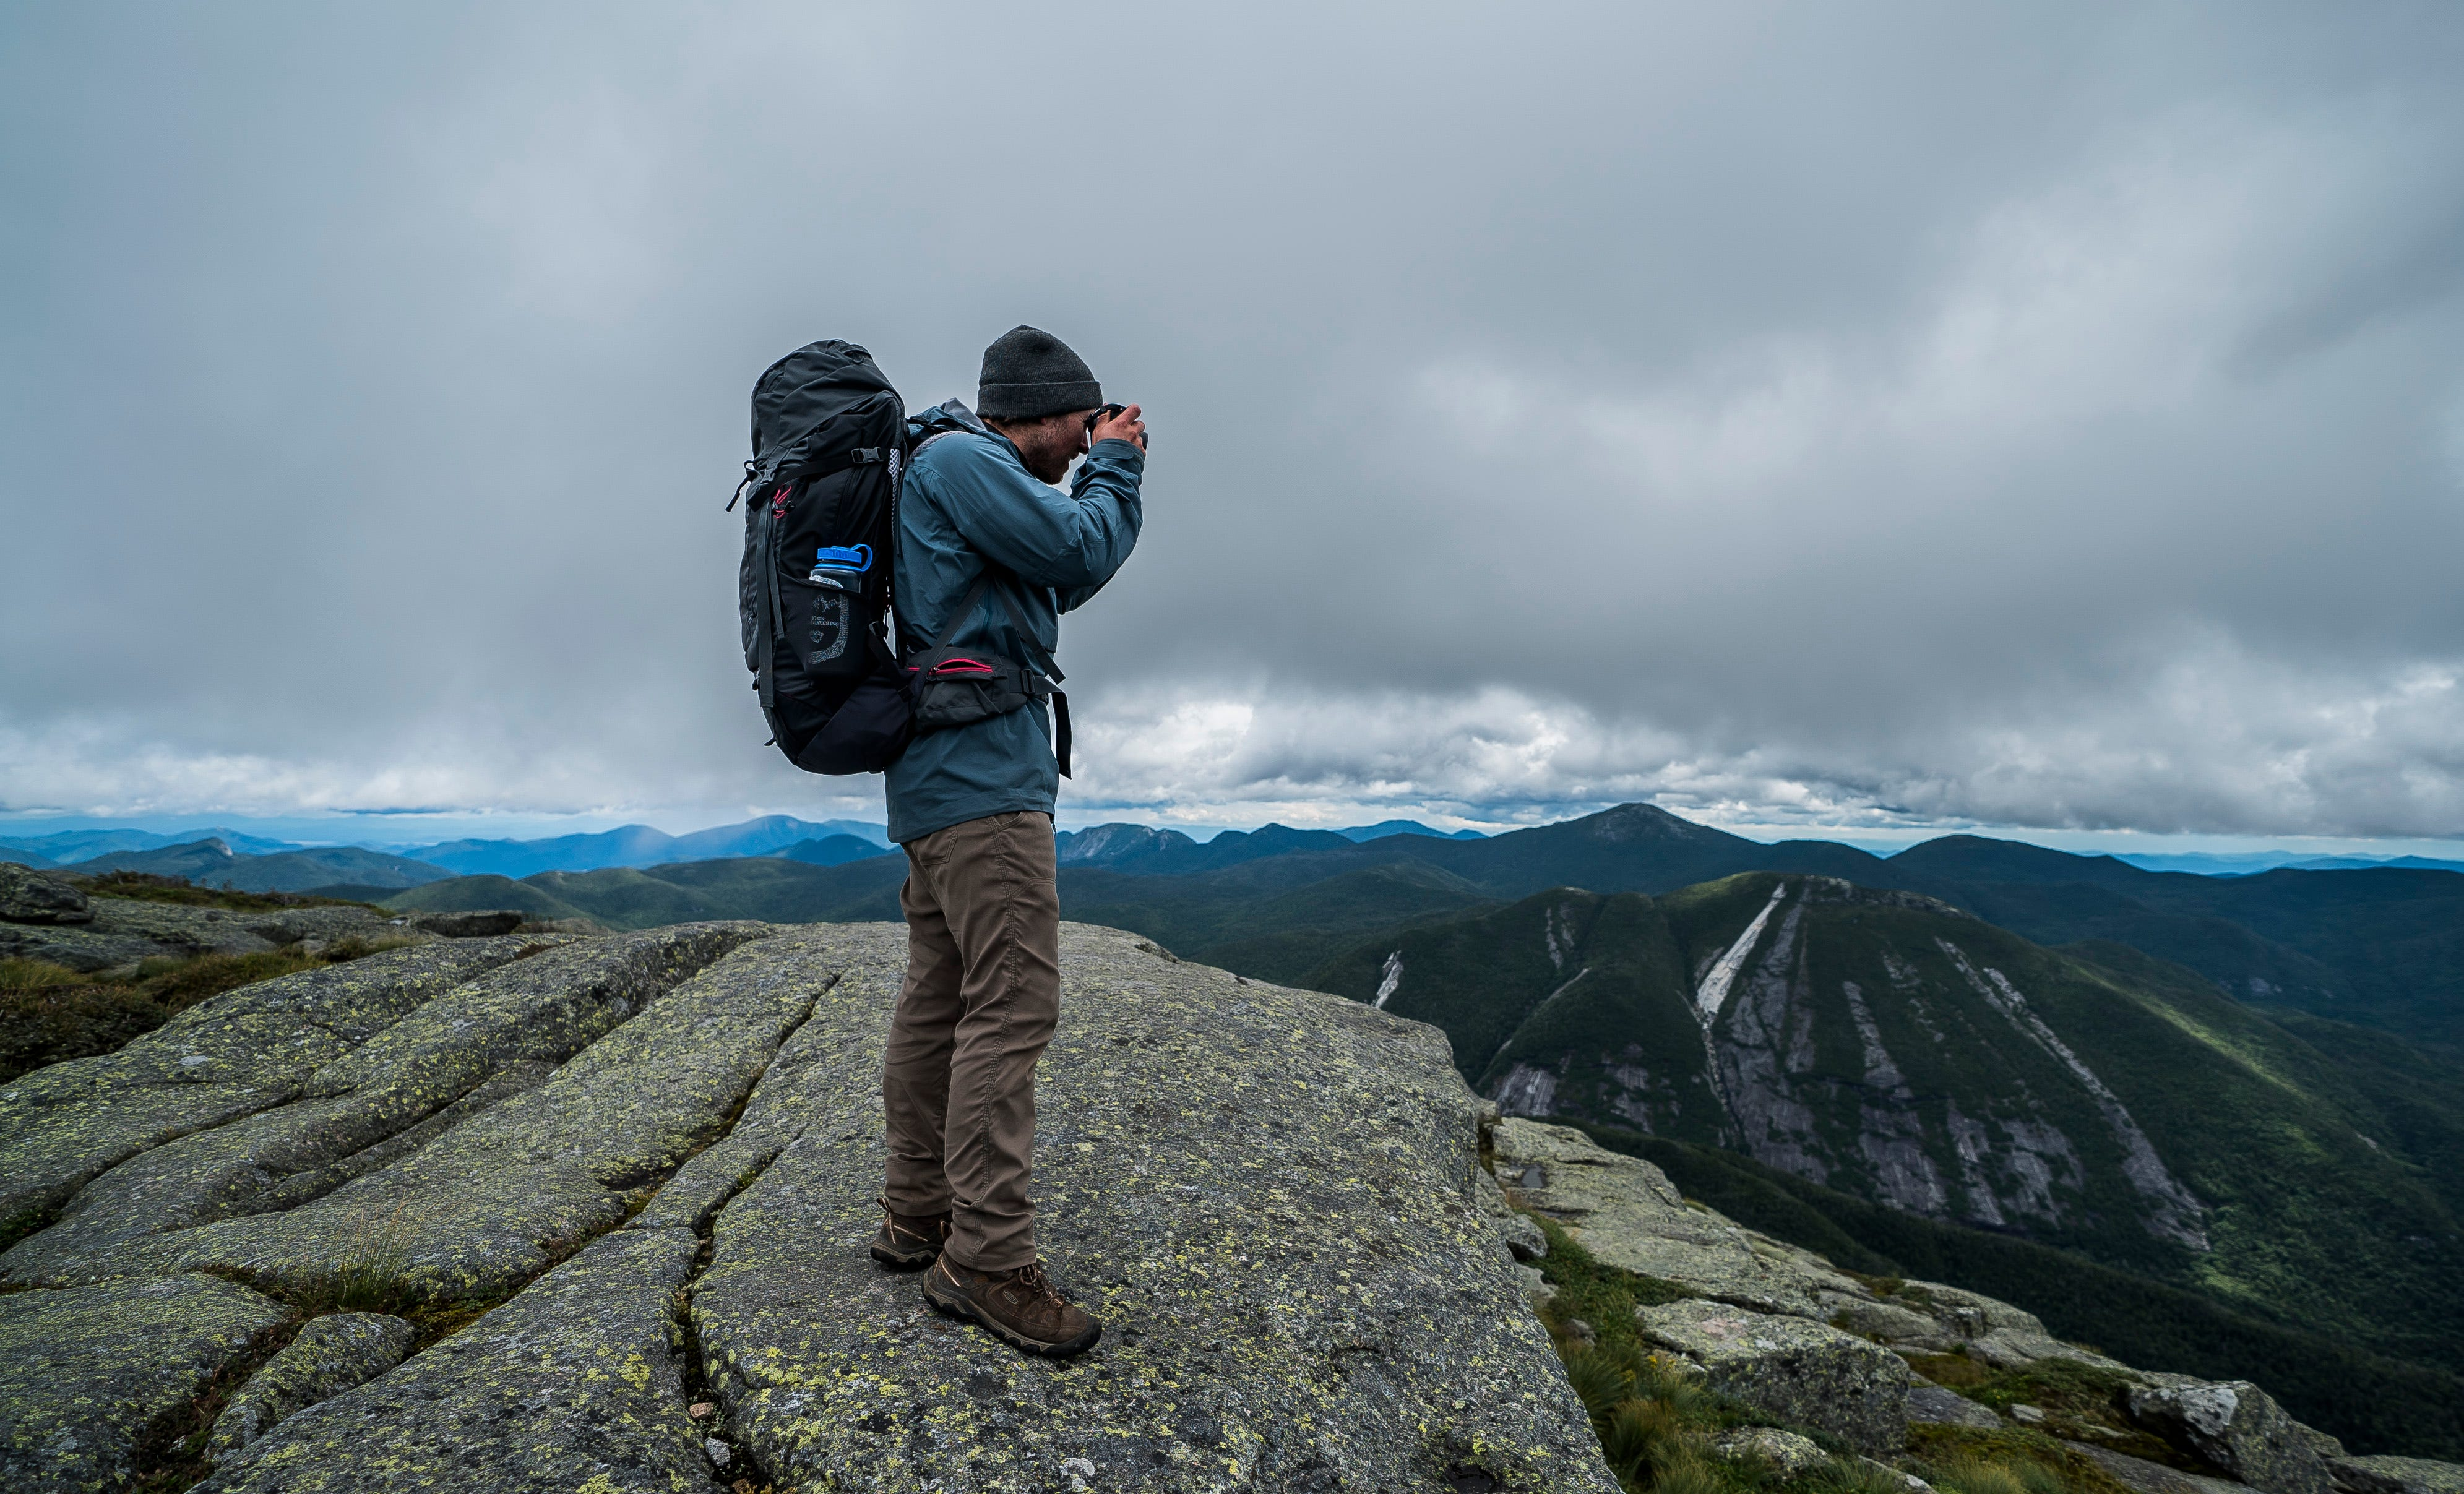 David LeMay, a traveling trainer with the Leave No Trace Center for Outdoor Ethics, takes pictures on top of Algonquin Peak in the Adirondack Park on Saturday, Aug. 10, 2019. LeMay and partner Monika Baumgart were helping summit stewards educate hikers in leave-no-trace practices while in the backcountry.